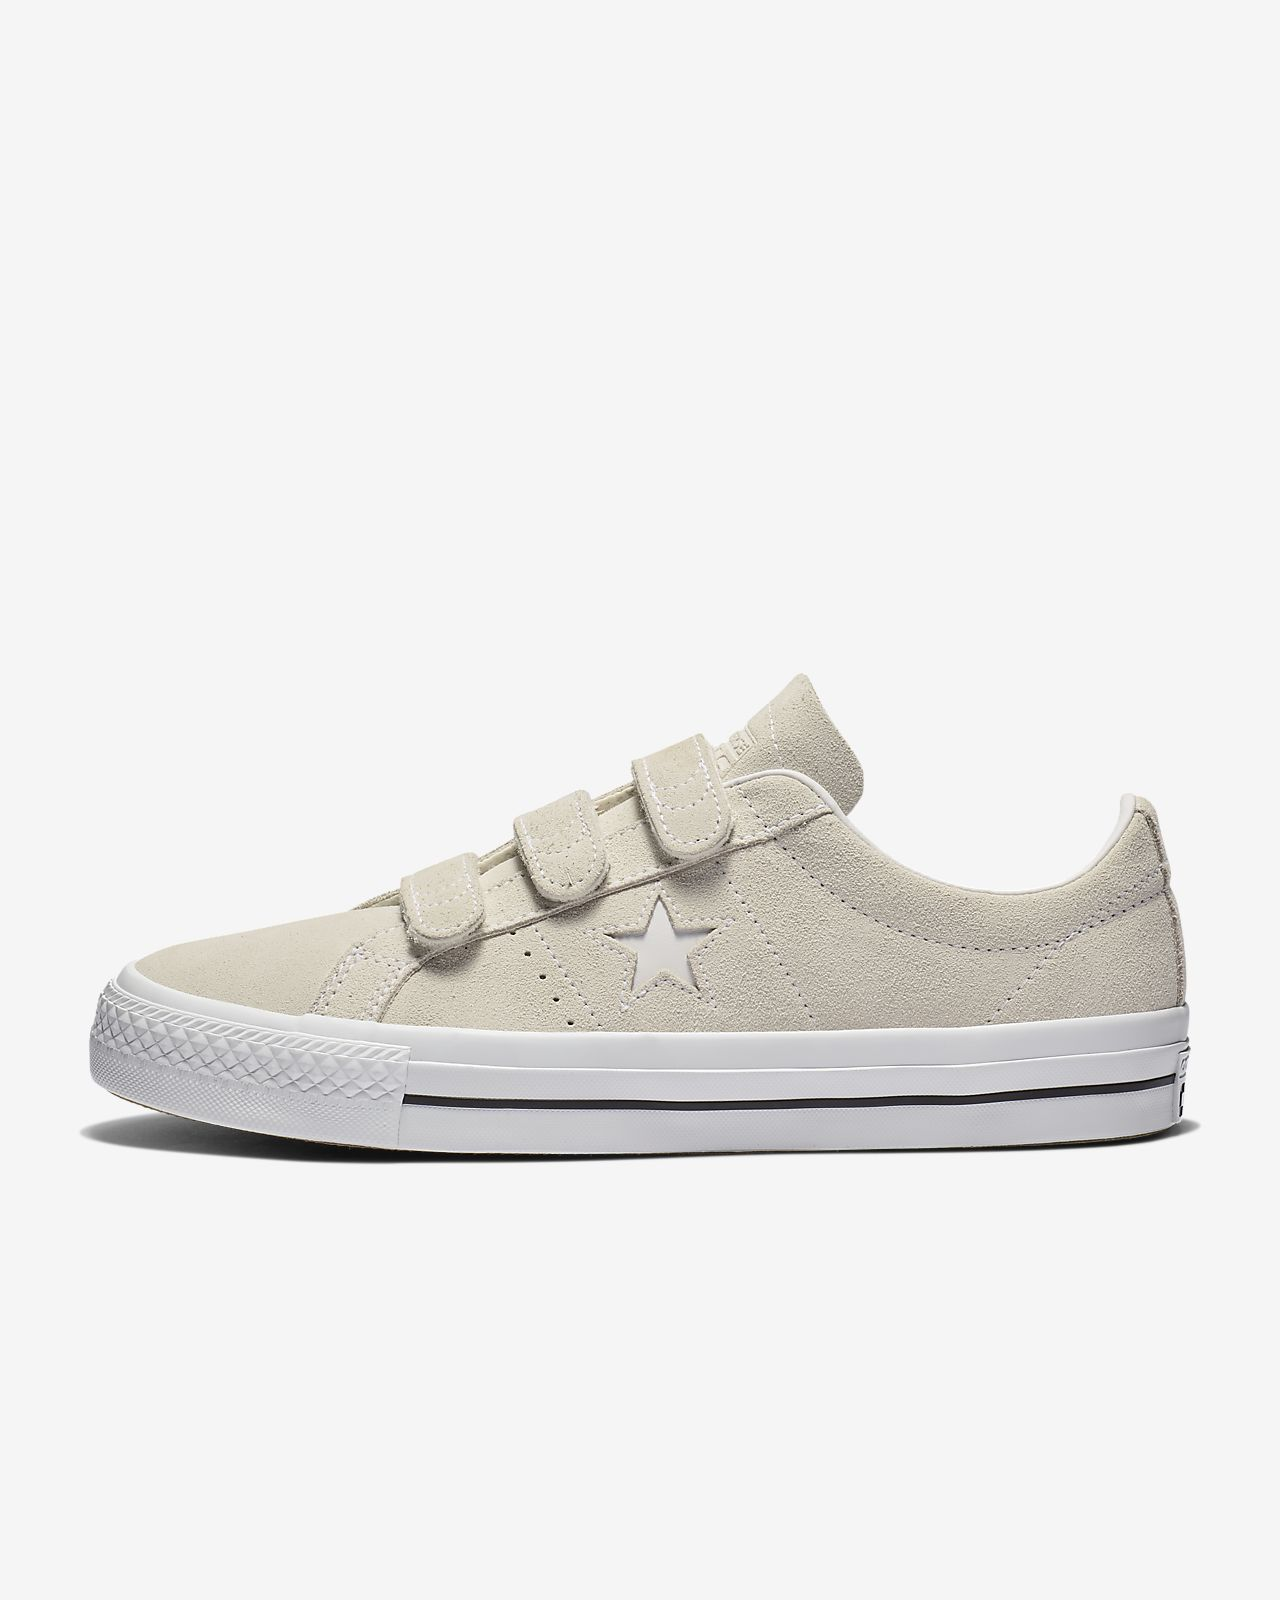 Converse One Star Pro Hook And Loop Suede Low Top  Unisex Skate Shoe